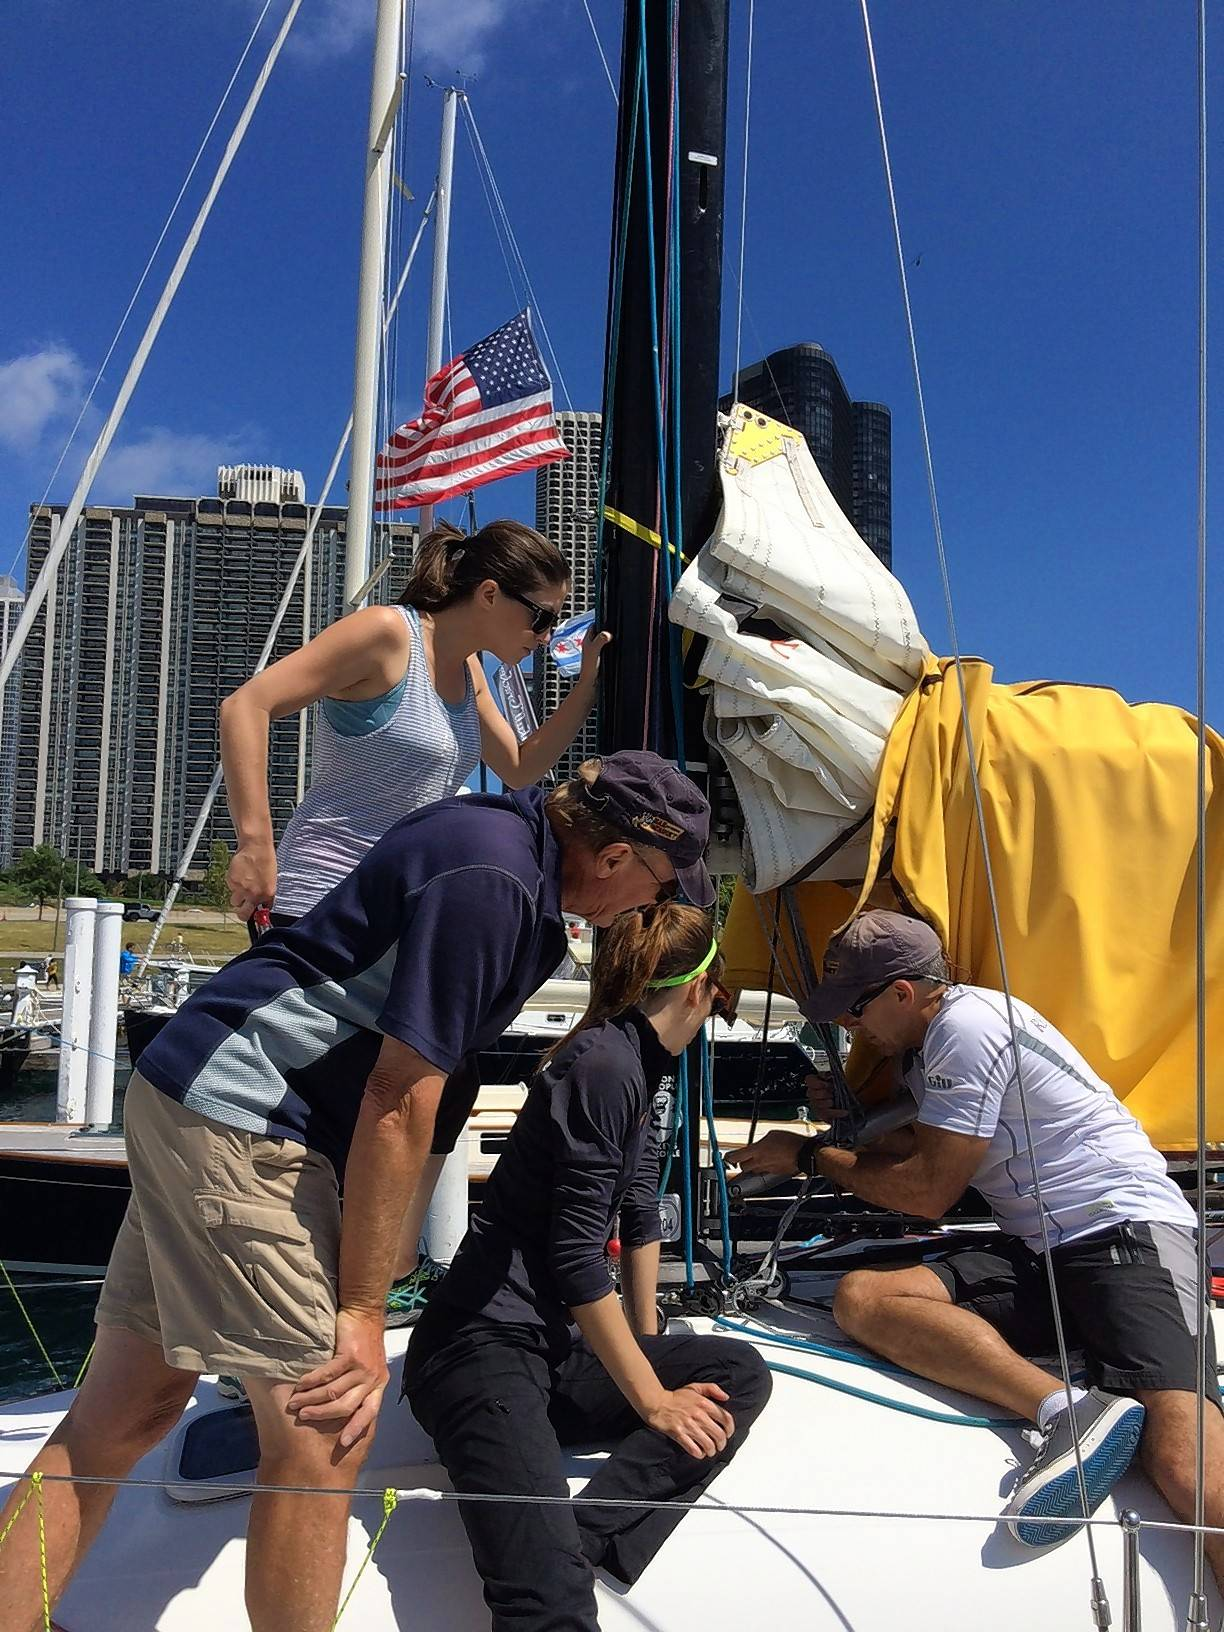 Lester: Naperville man vies for 'Island goat' status in Mackinac race